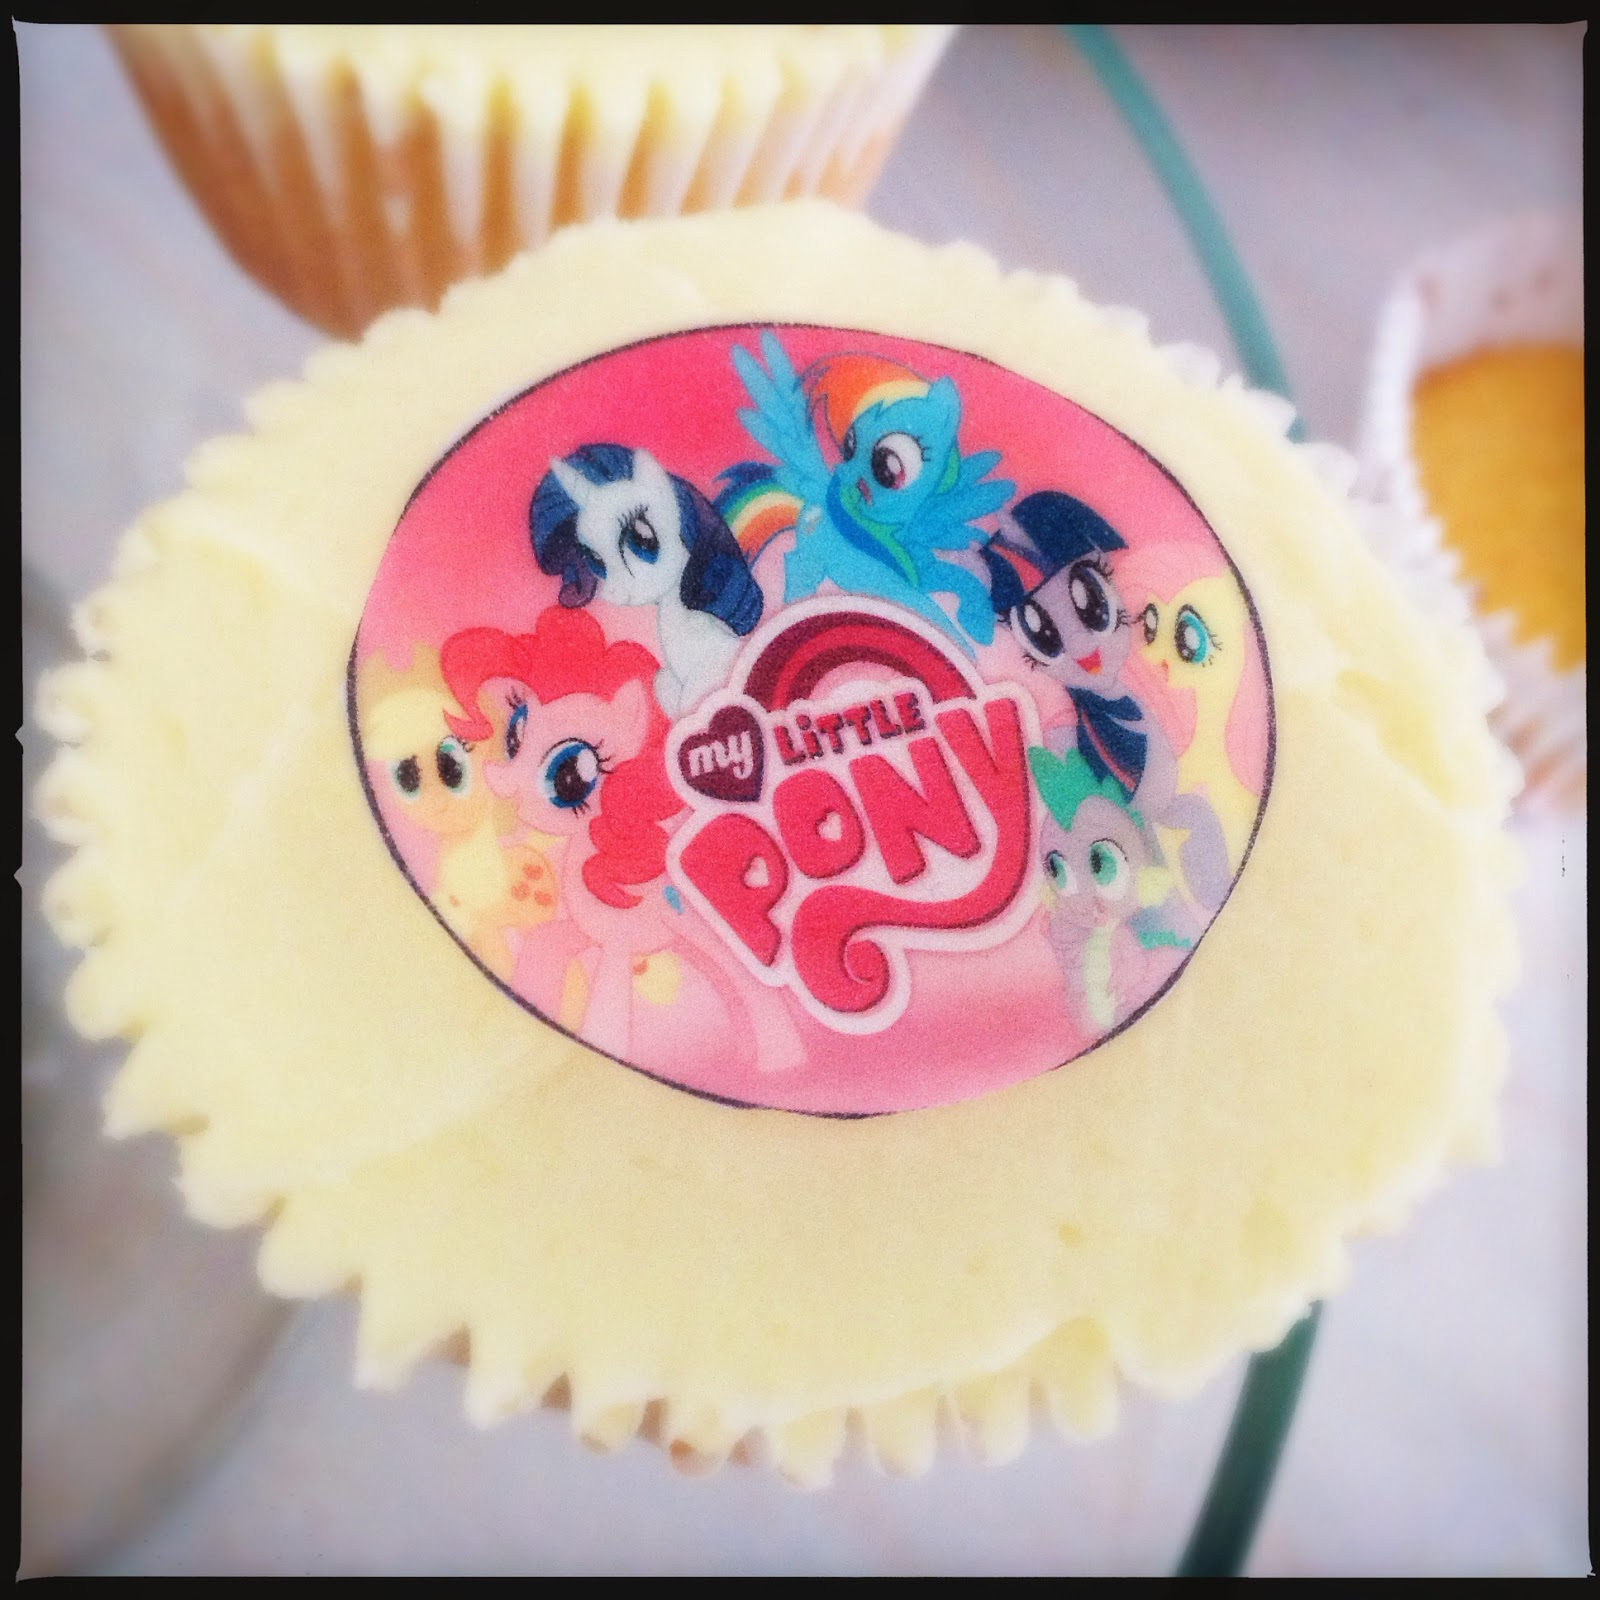 Miraculous United Cakedom My Little Pony Birthday Cupcakes Funny Birthday Cards Online Alyptdamsfinfo